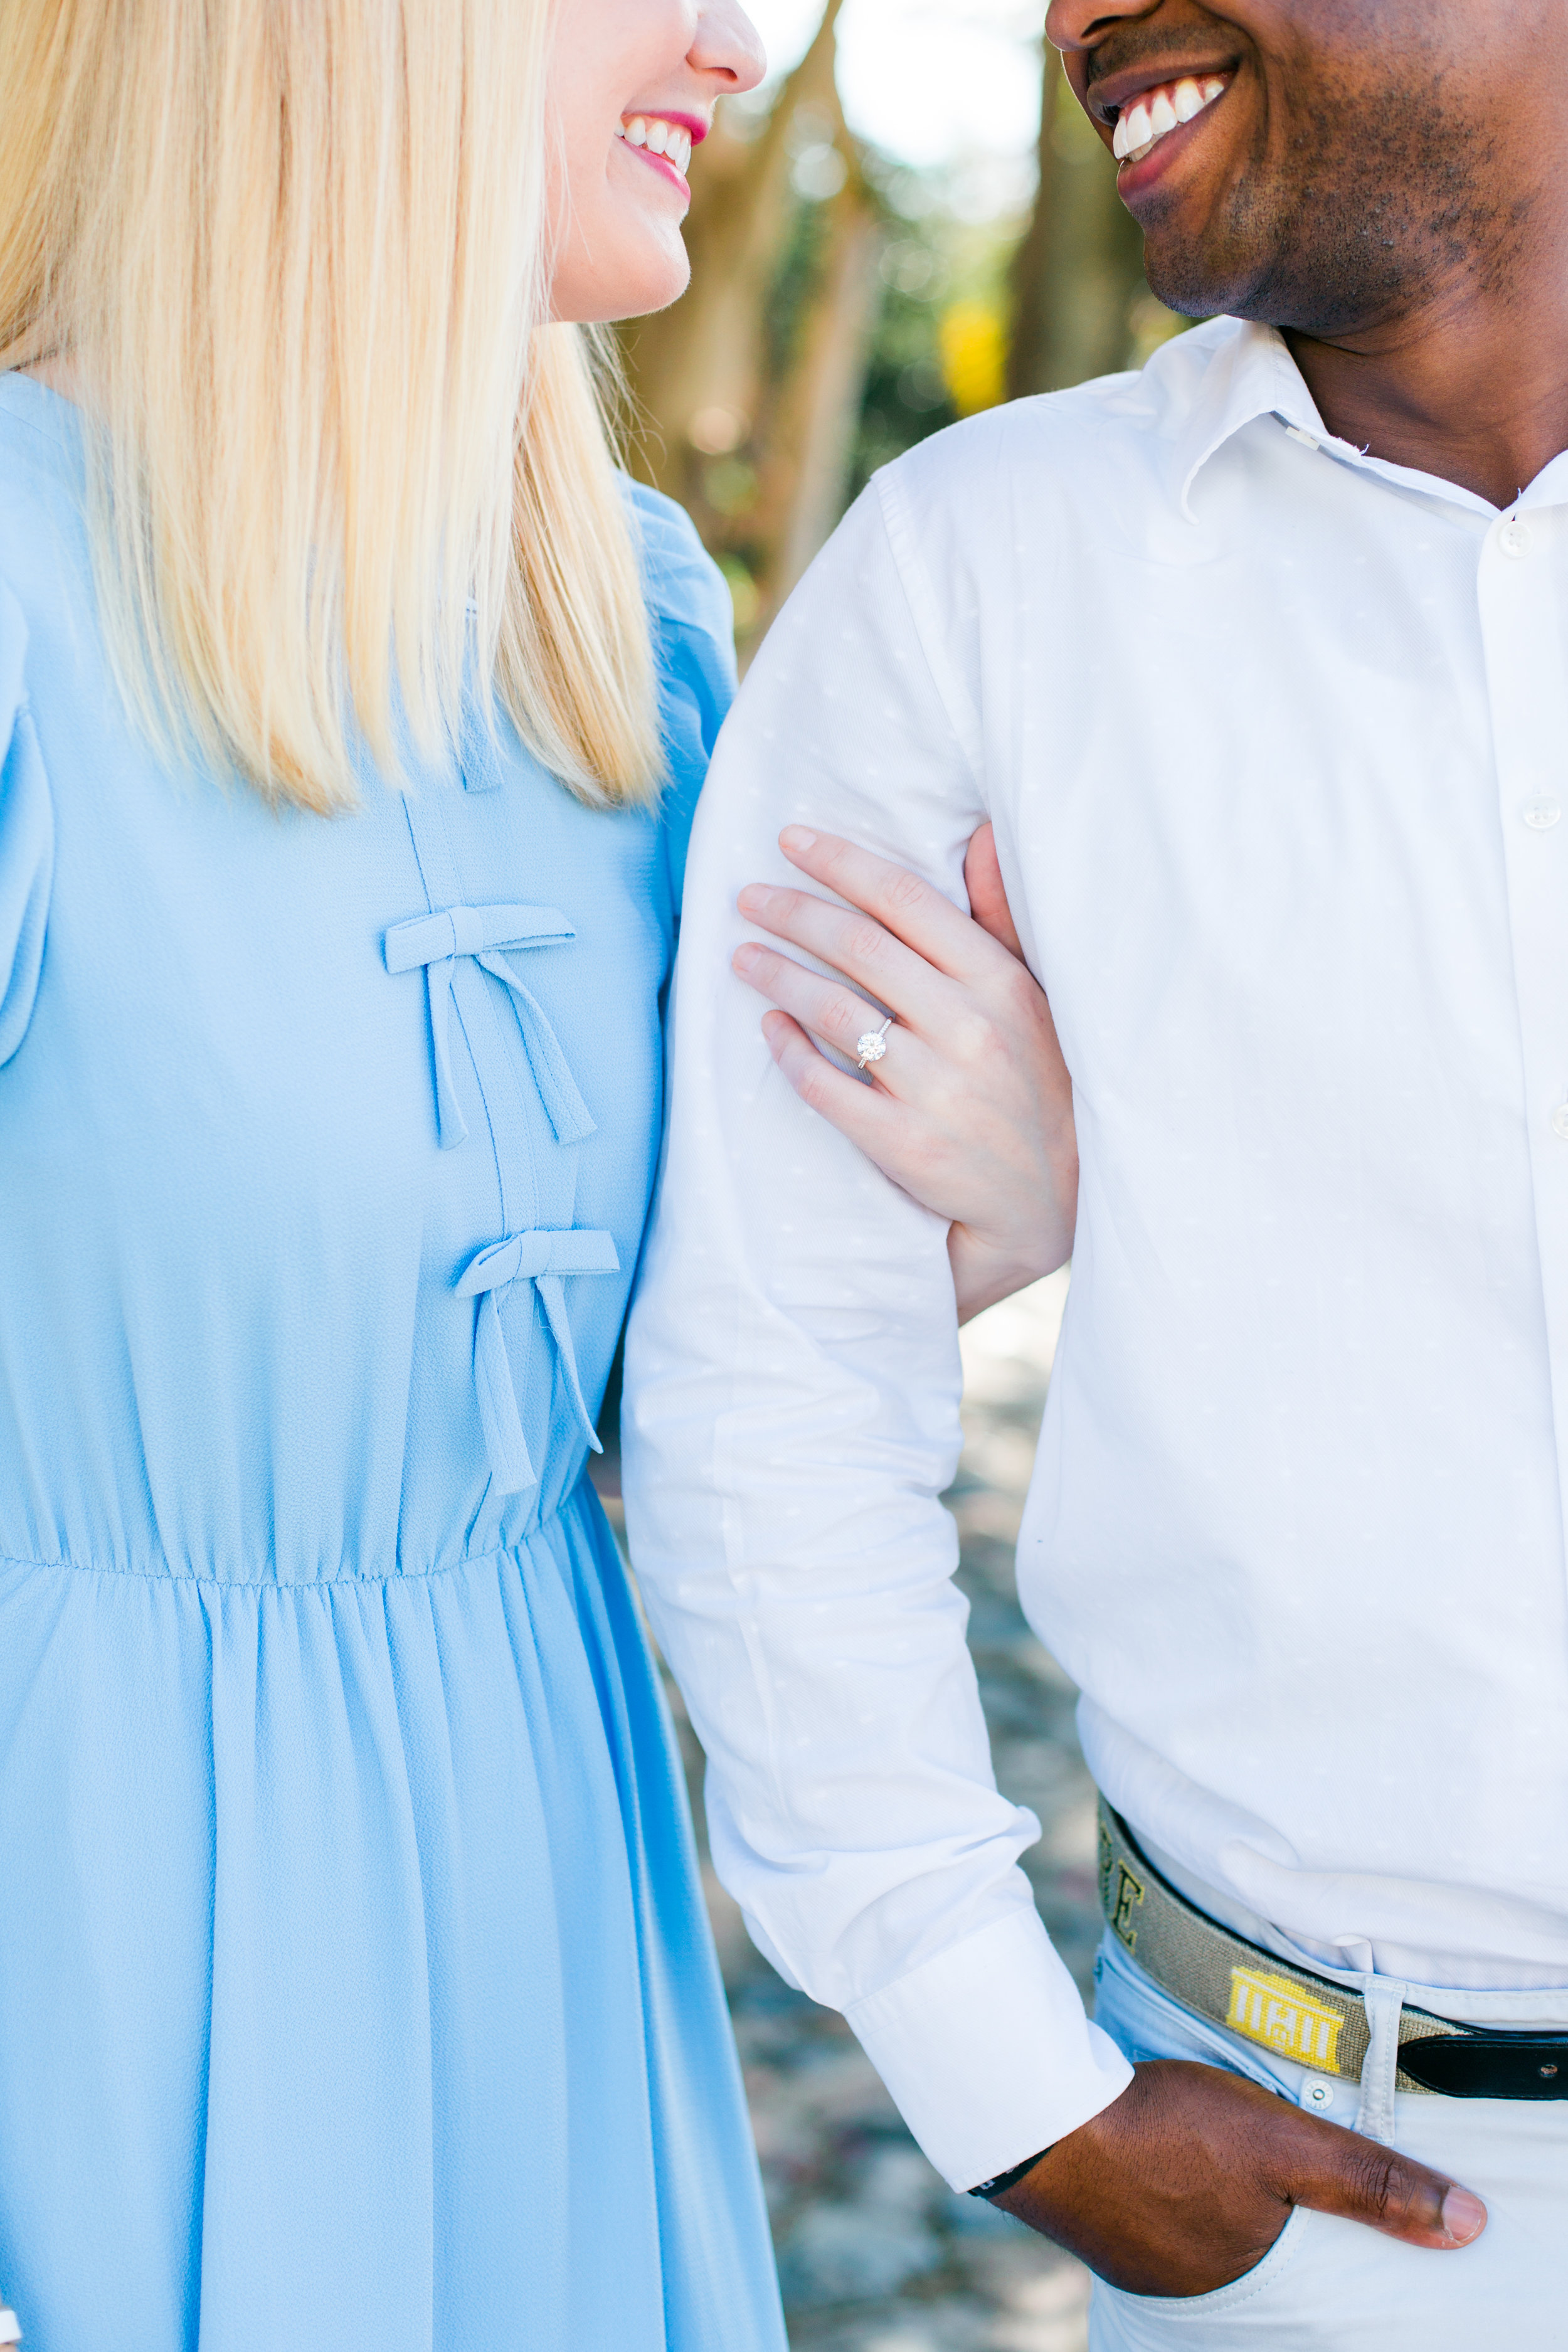 downtown-charleston-whimisical-engagement-ring-details-kailee-dimeglio